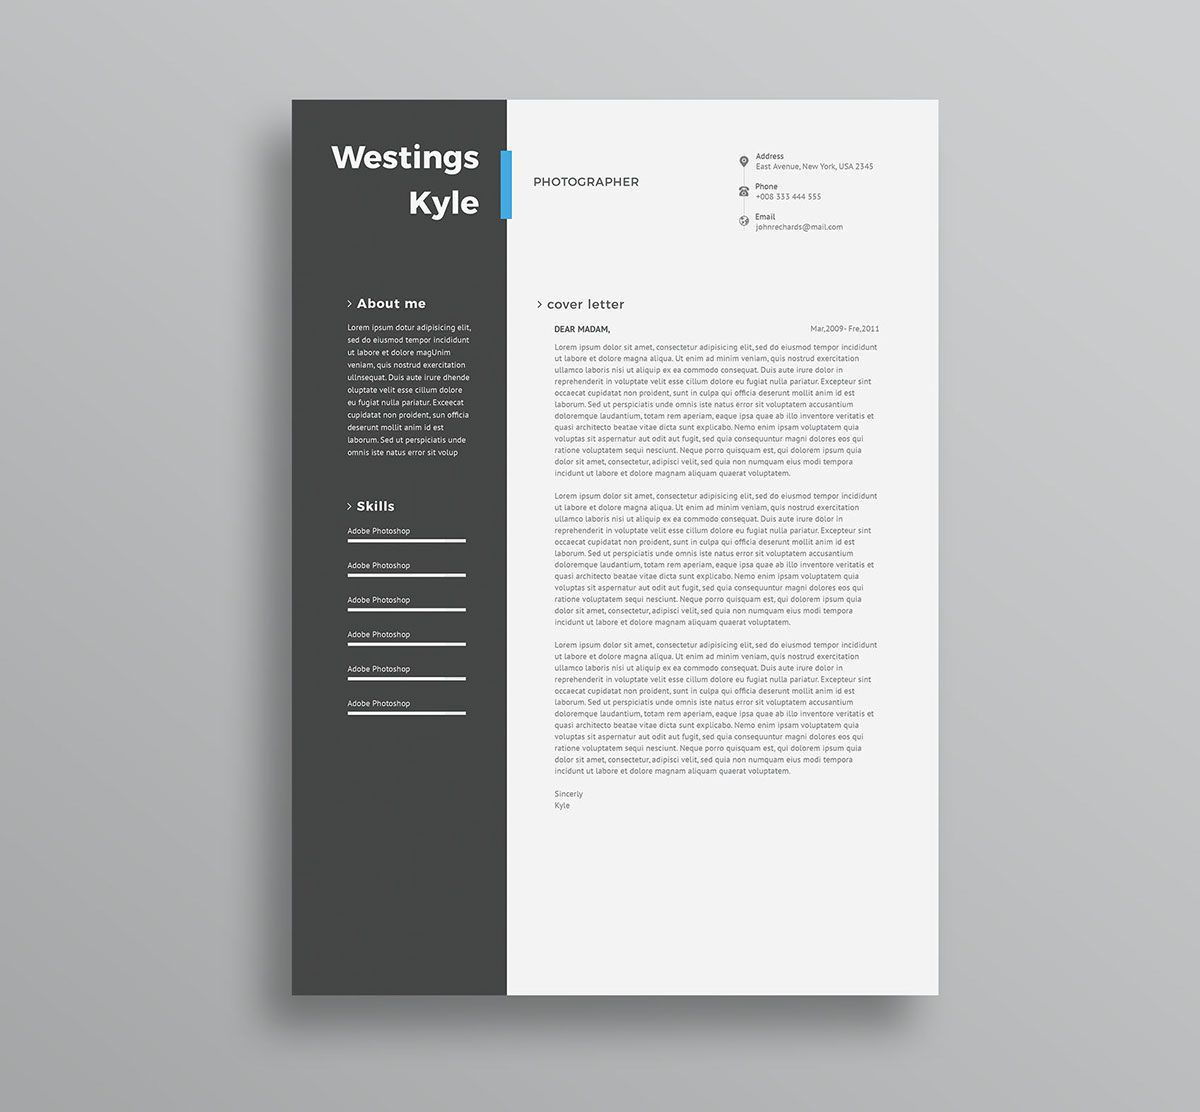 004 Amazing Professional Resume Template 2018 Free Download Photo Full